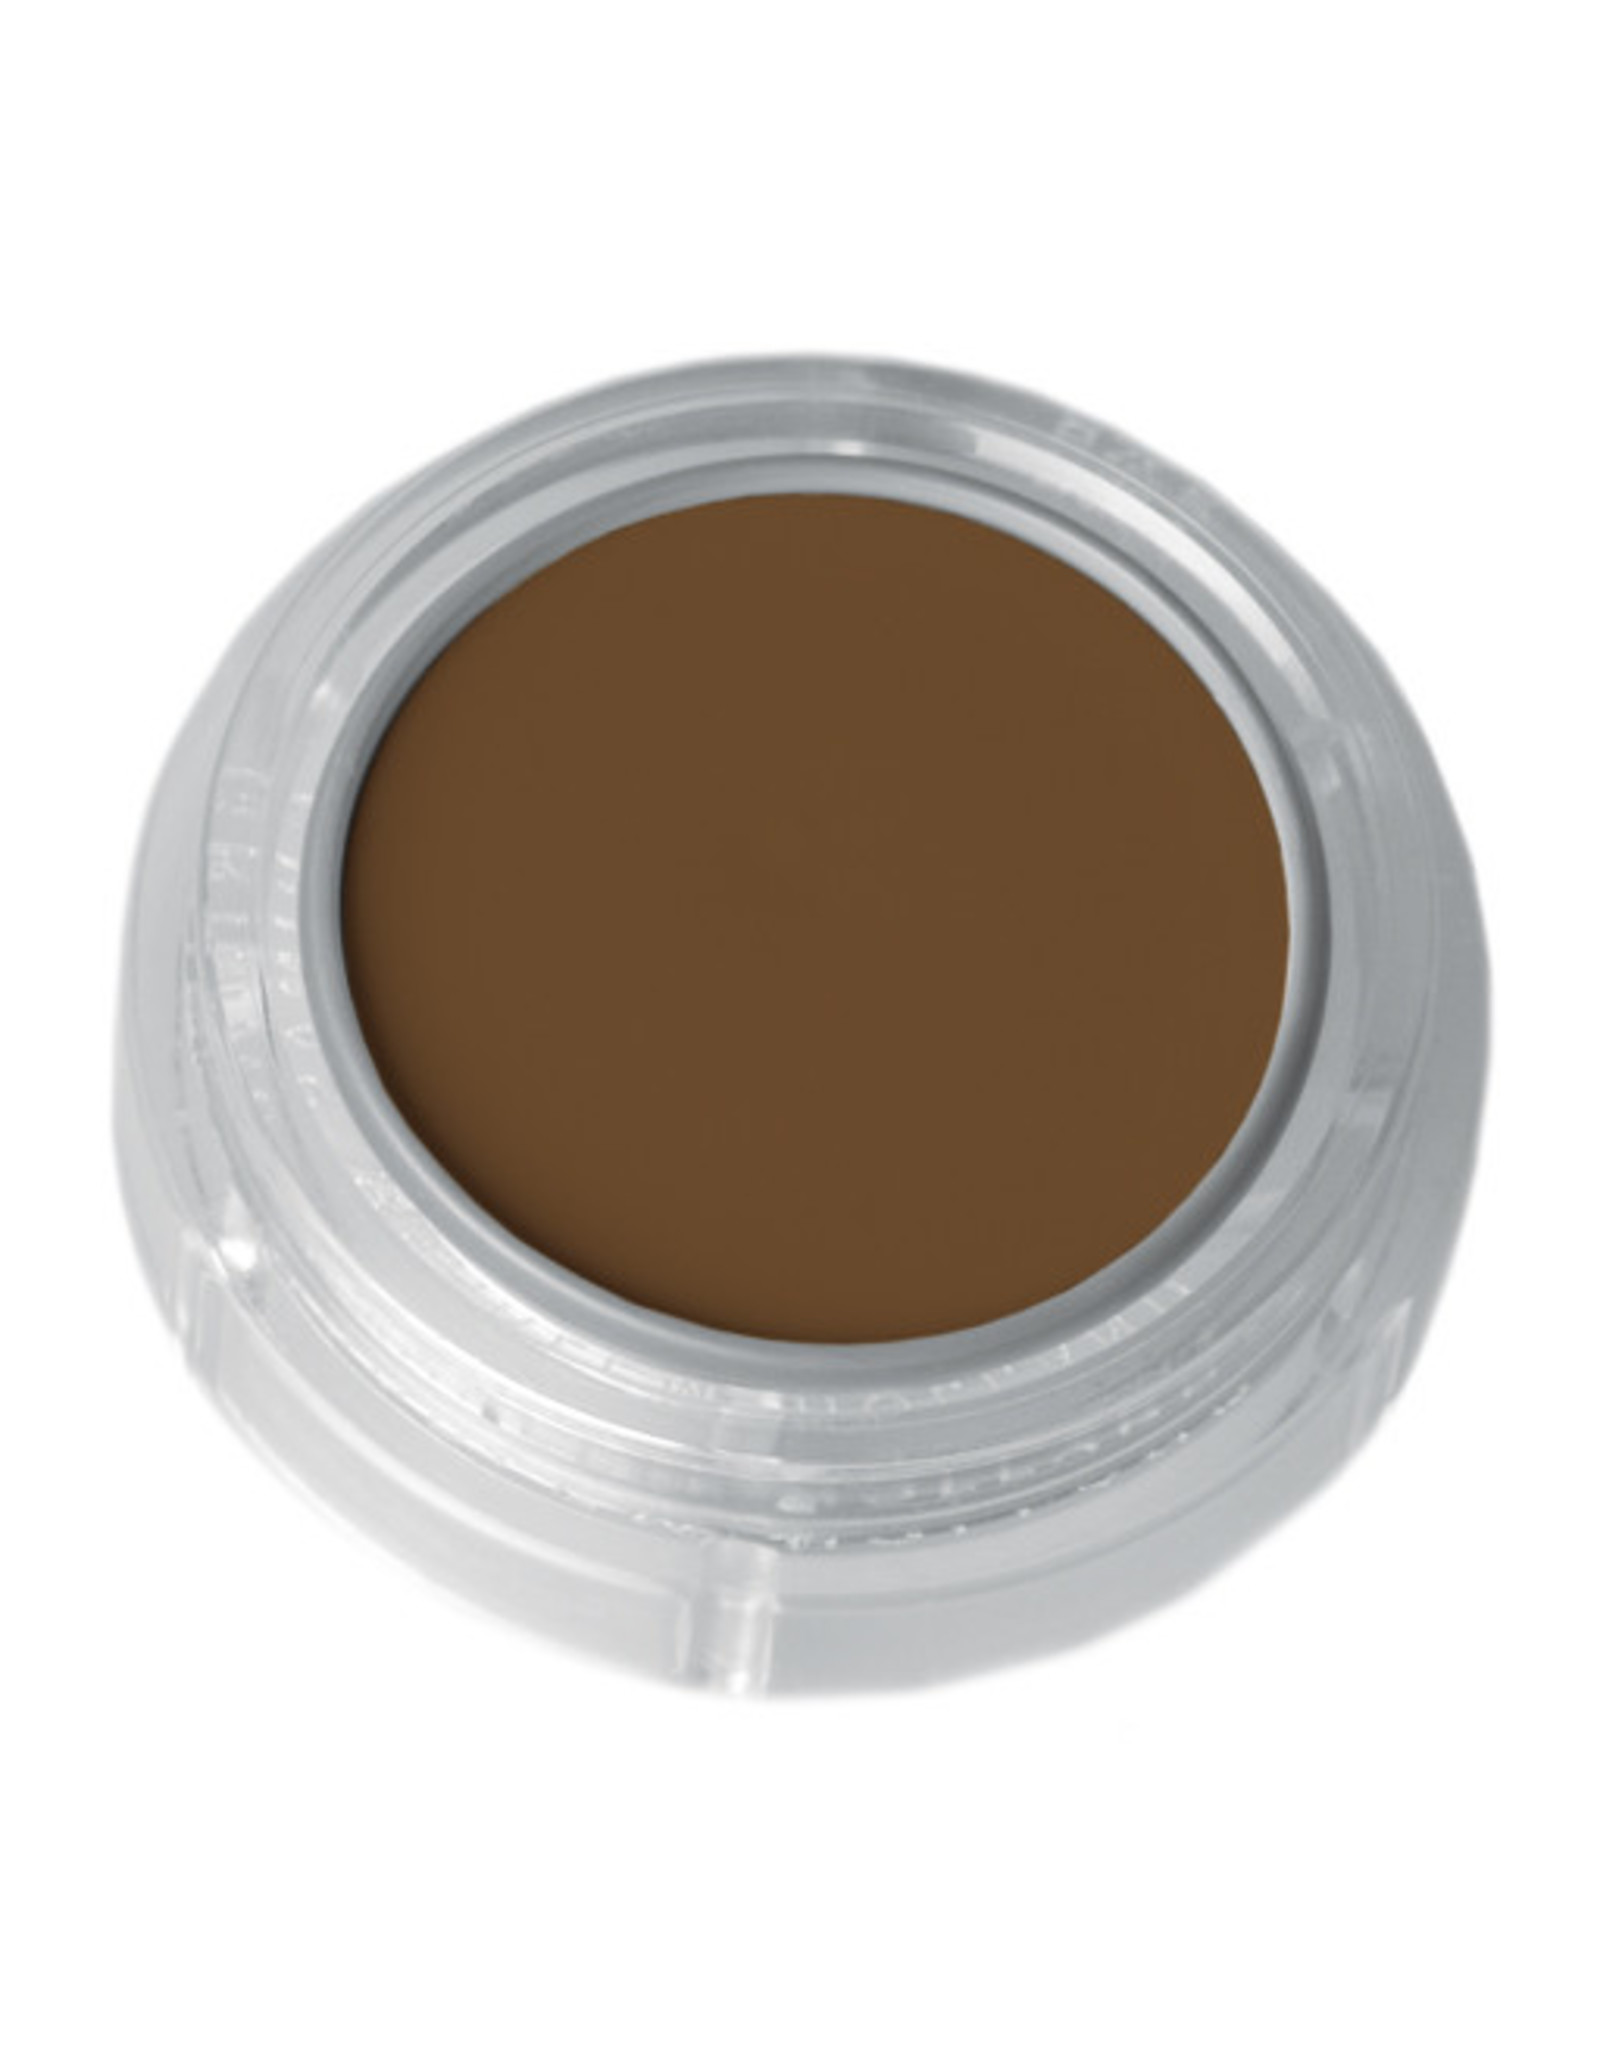 Grimas CAMOUFLAGE MAKE-UP PURE D6 Voor donkere huid A1 (2,5 ml)